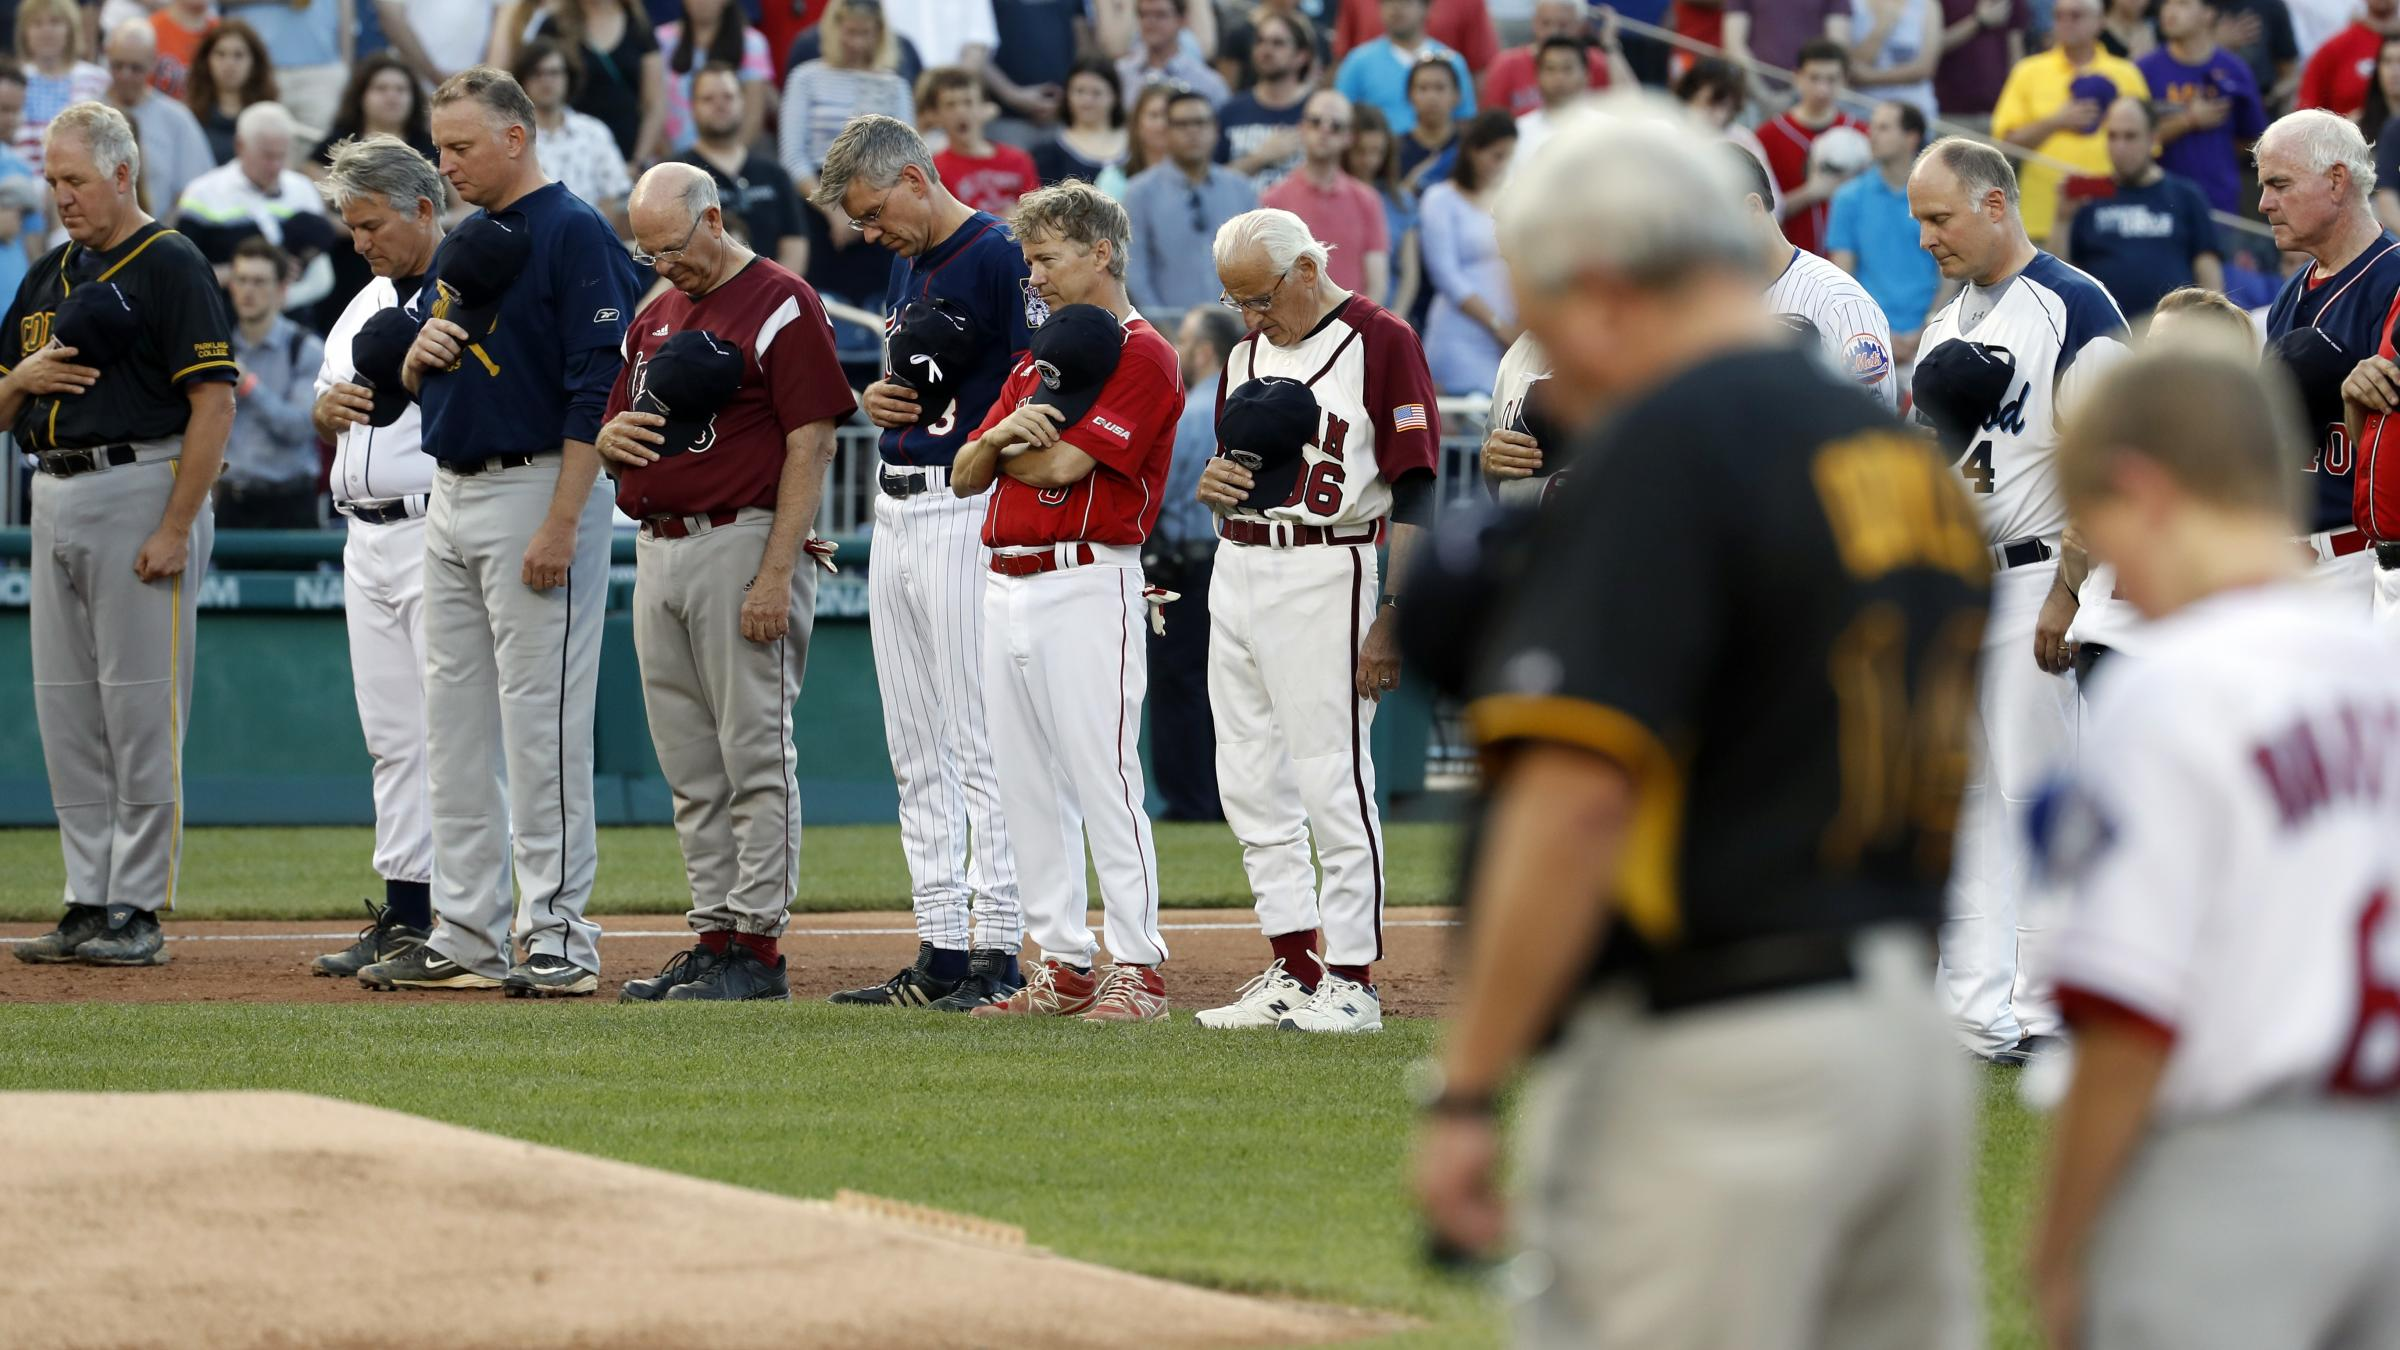 Donald Trump: Steve Scalise 'in some trouble' after baseball field shooting